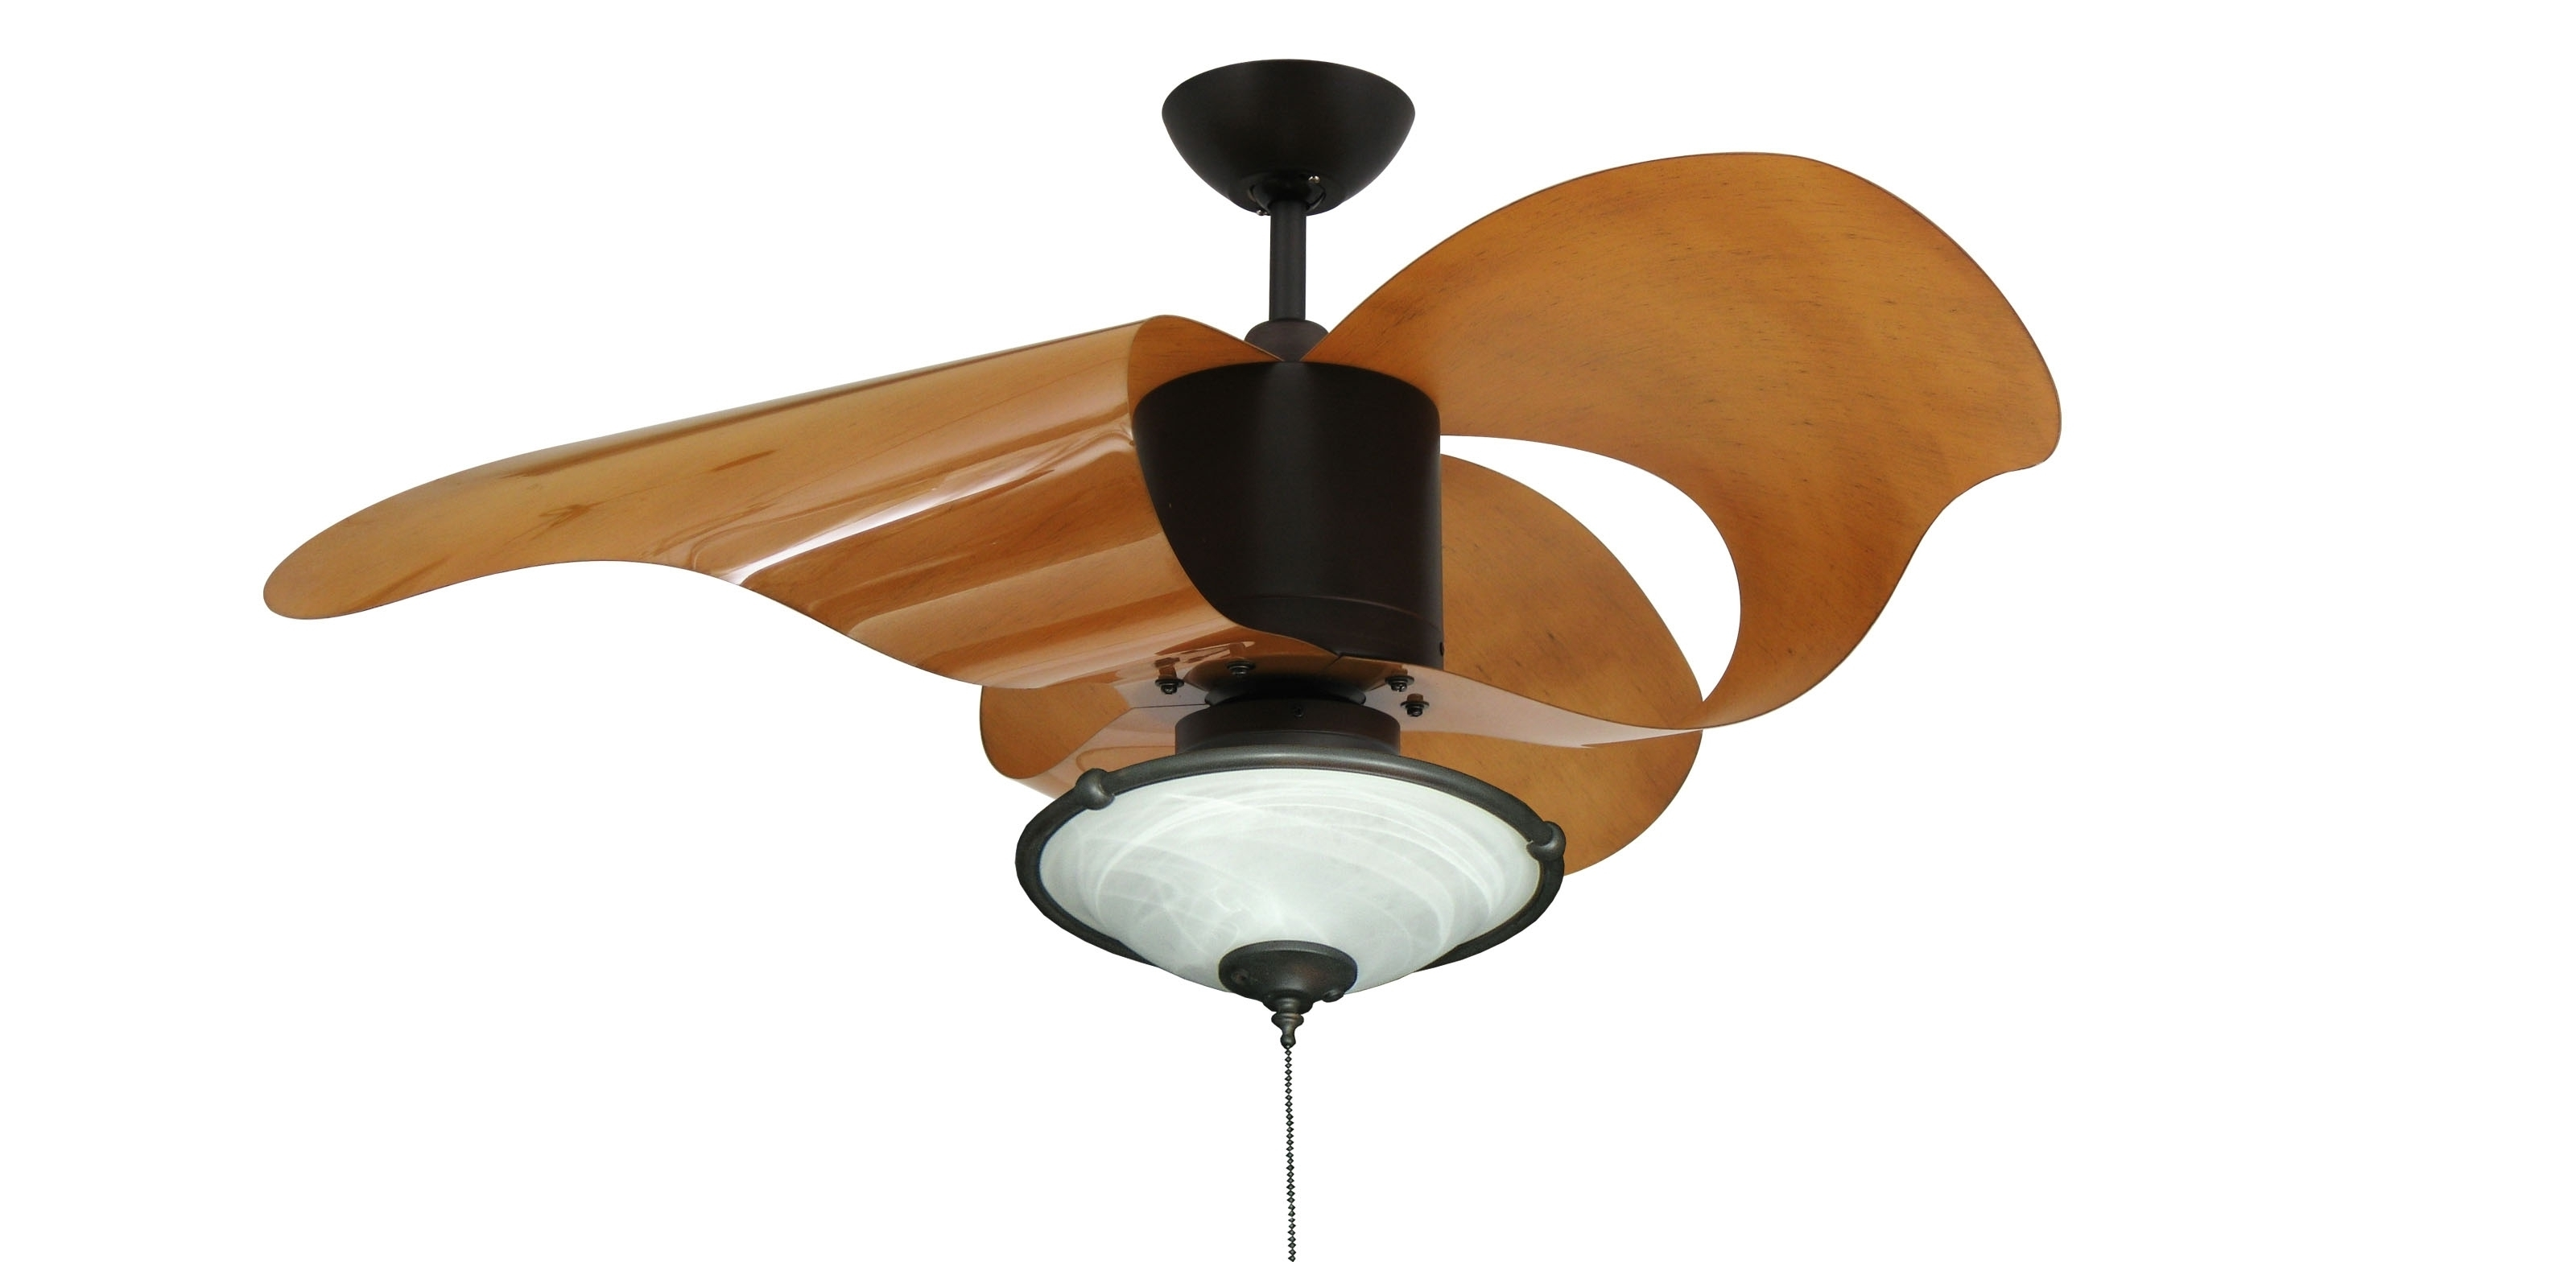 Contemporary Outdoor Ceiling Fans With Regard To Current Modern Outdoor Ceiling Fans 52 Antique White Large Room, Modern (View 18 of 20)